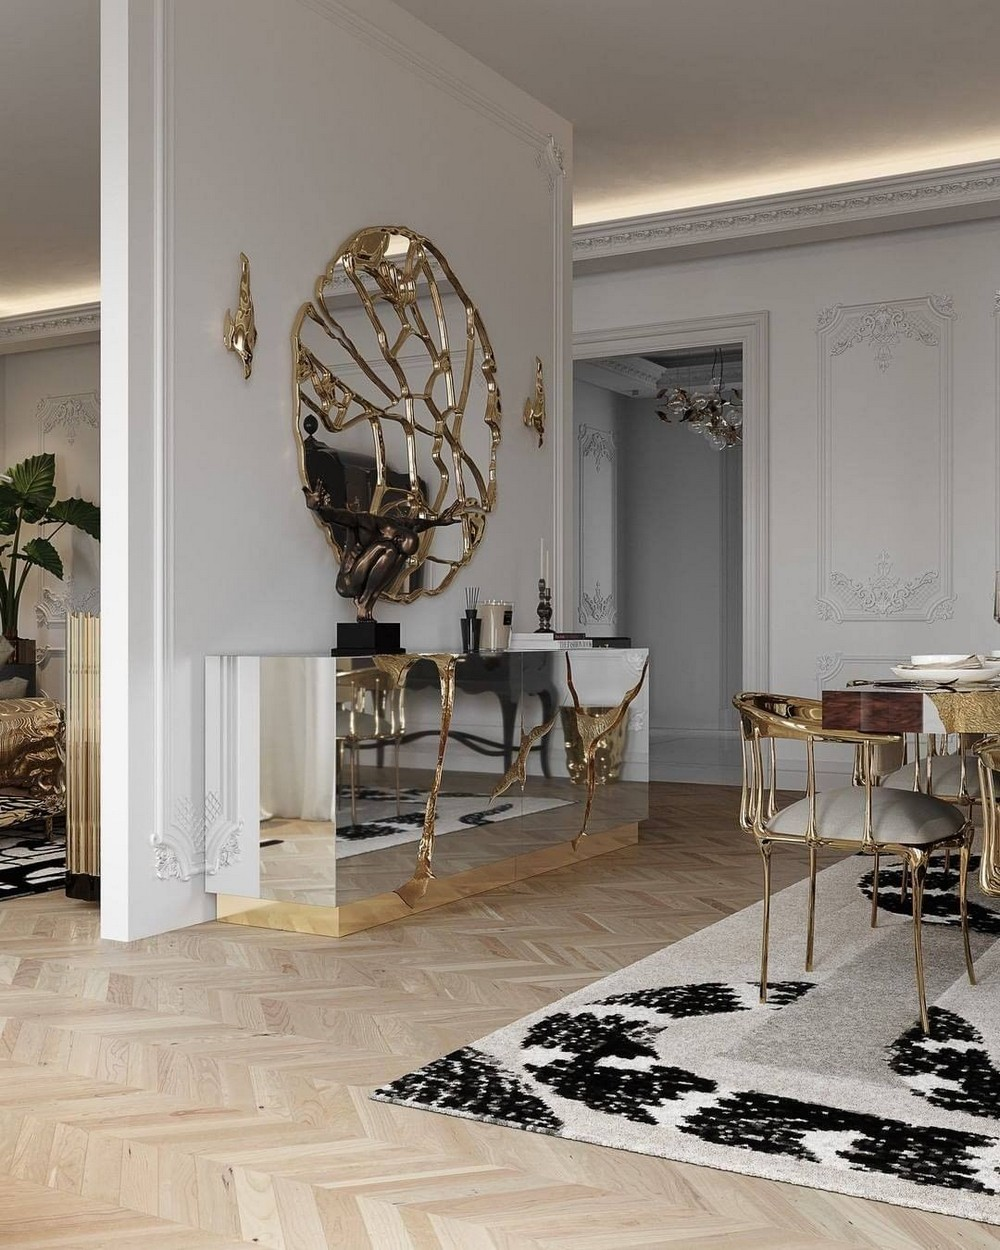 Improve Your Dining Room With These Amazing Ideas dining room Improve Your Dining Room With These Amazing Ideas 3 7